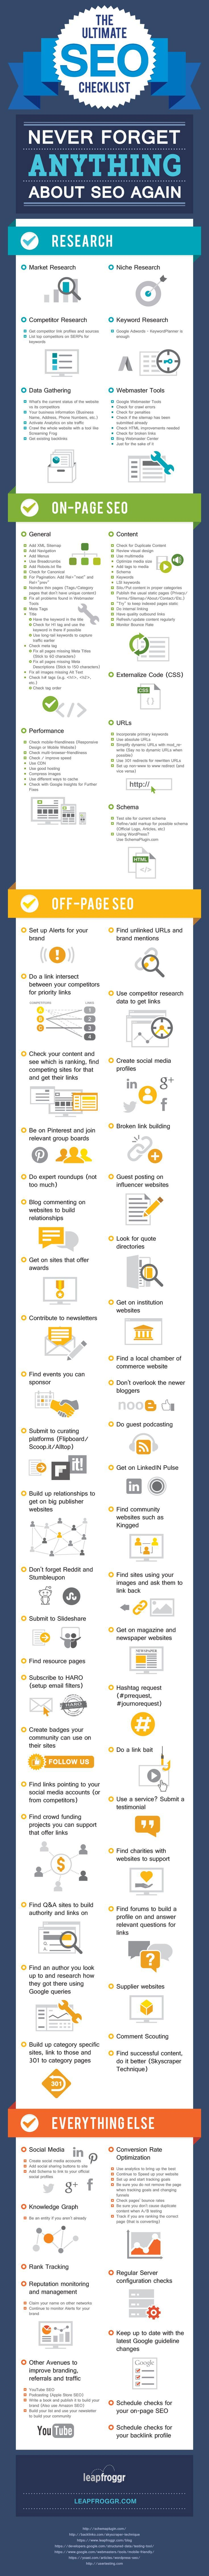 [INFOGRAPHIC] Never Forget Anything About SEO Again—Research; On-page; Off-page; Misc; Details>